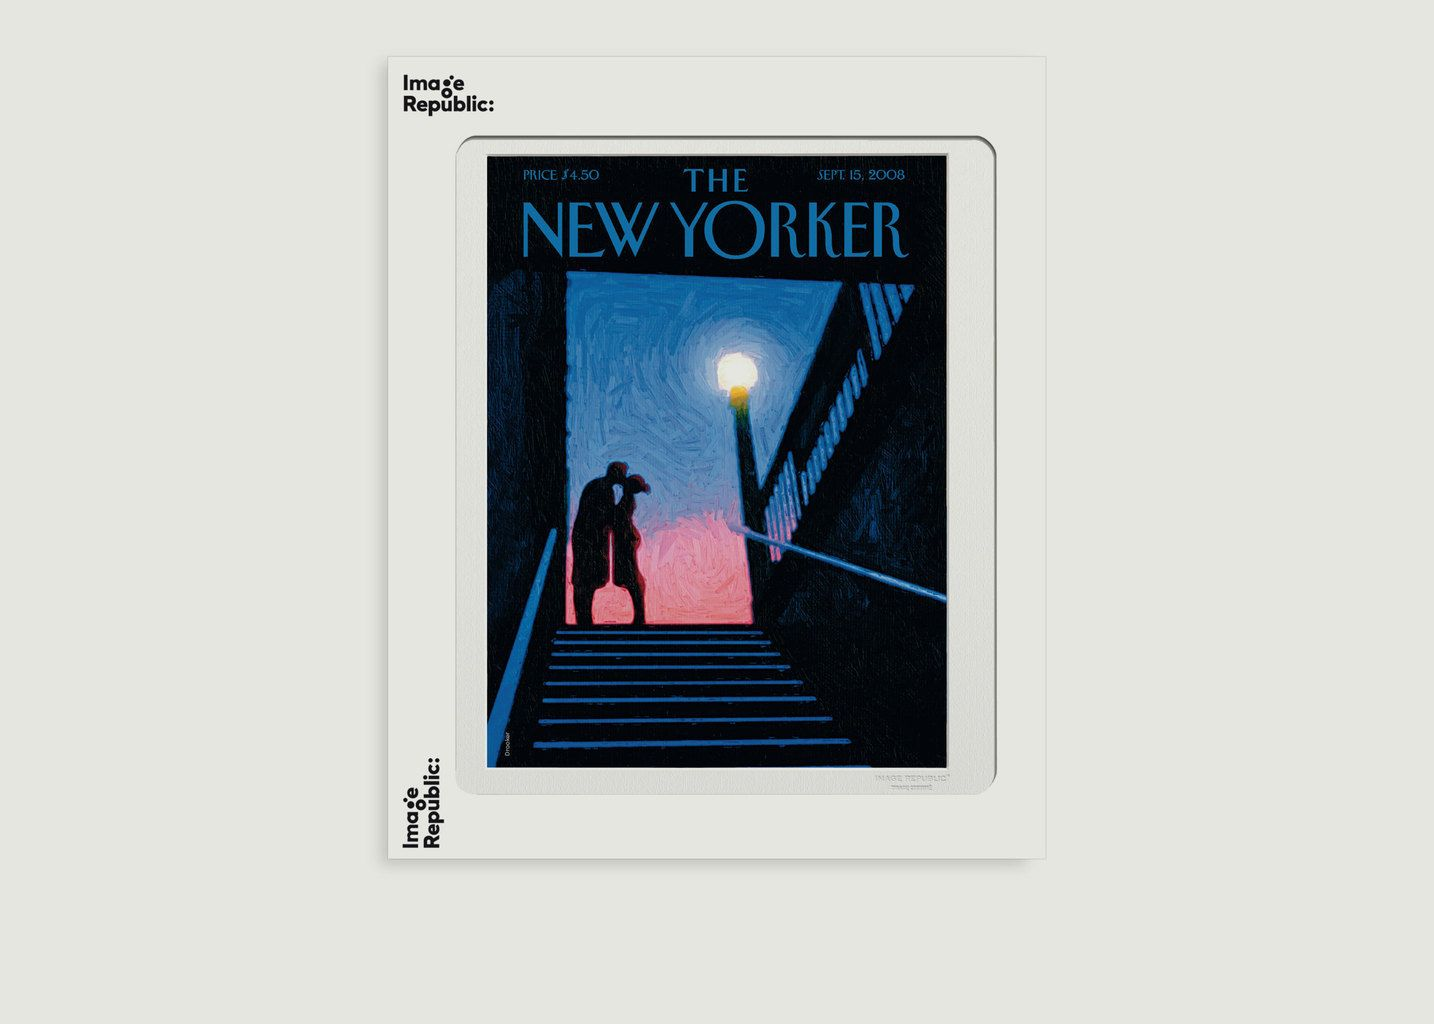 Affiche The New Yorker 106 Drooker NYC Moment - Image Republic